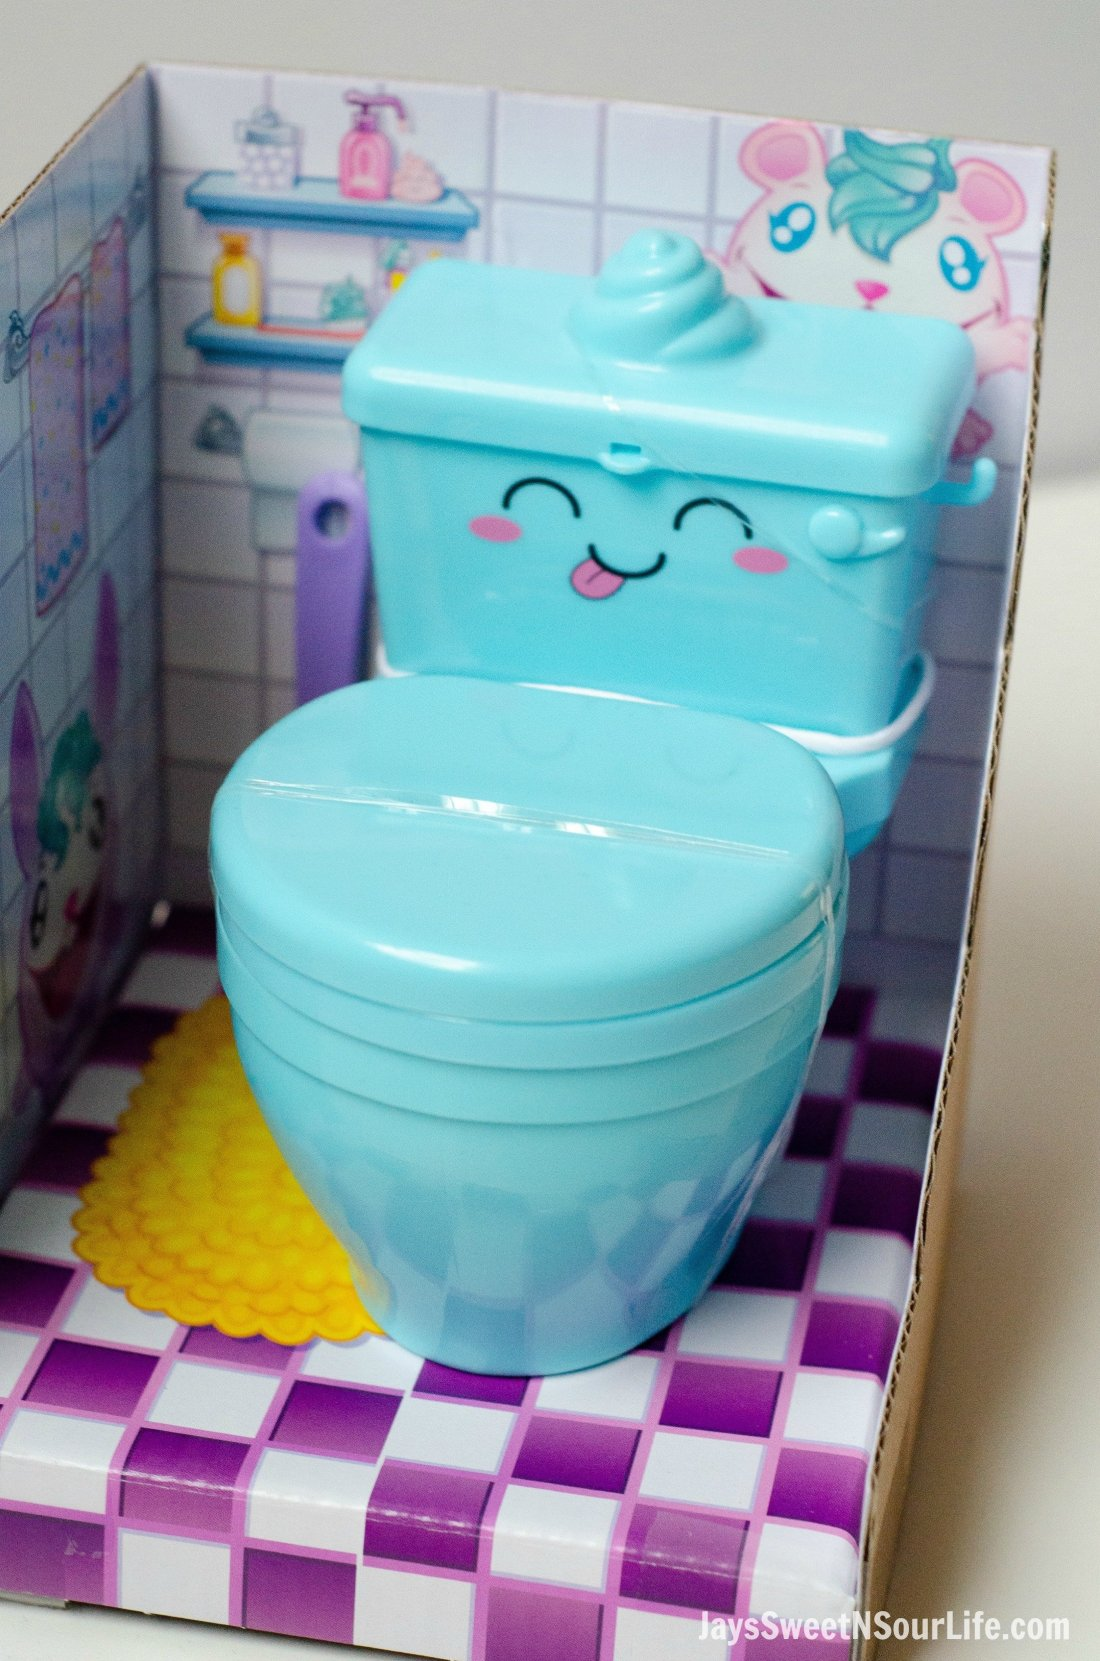 Pooparoos Packaging With Toilet. Pooparoos are full of fun surprises and tons of fun for all.